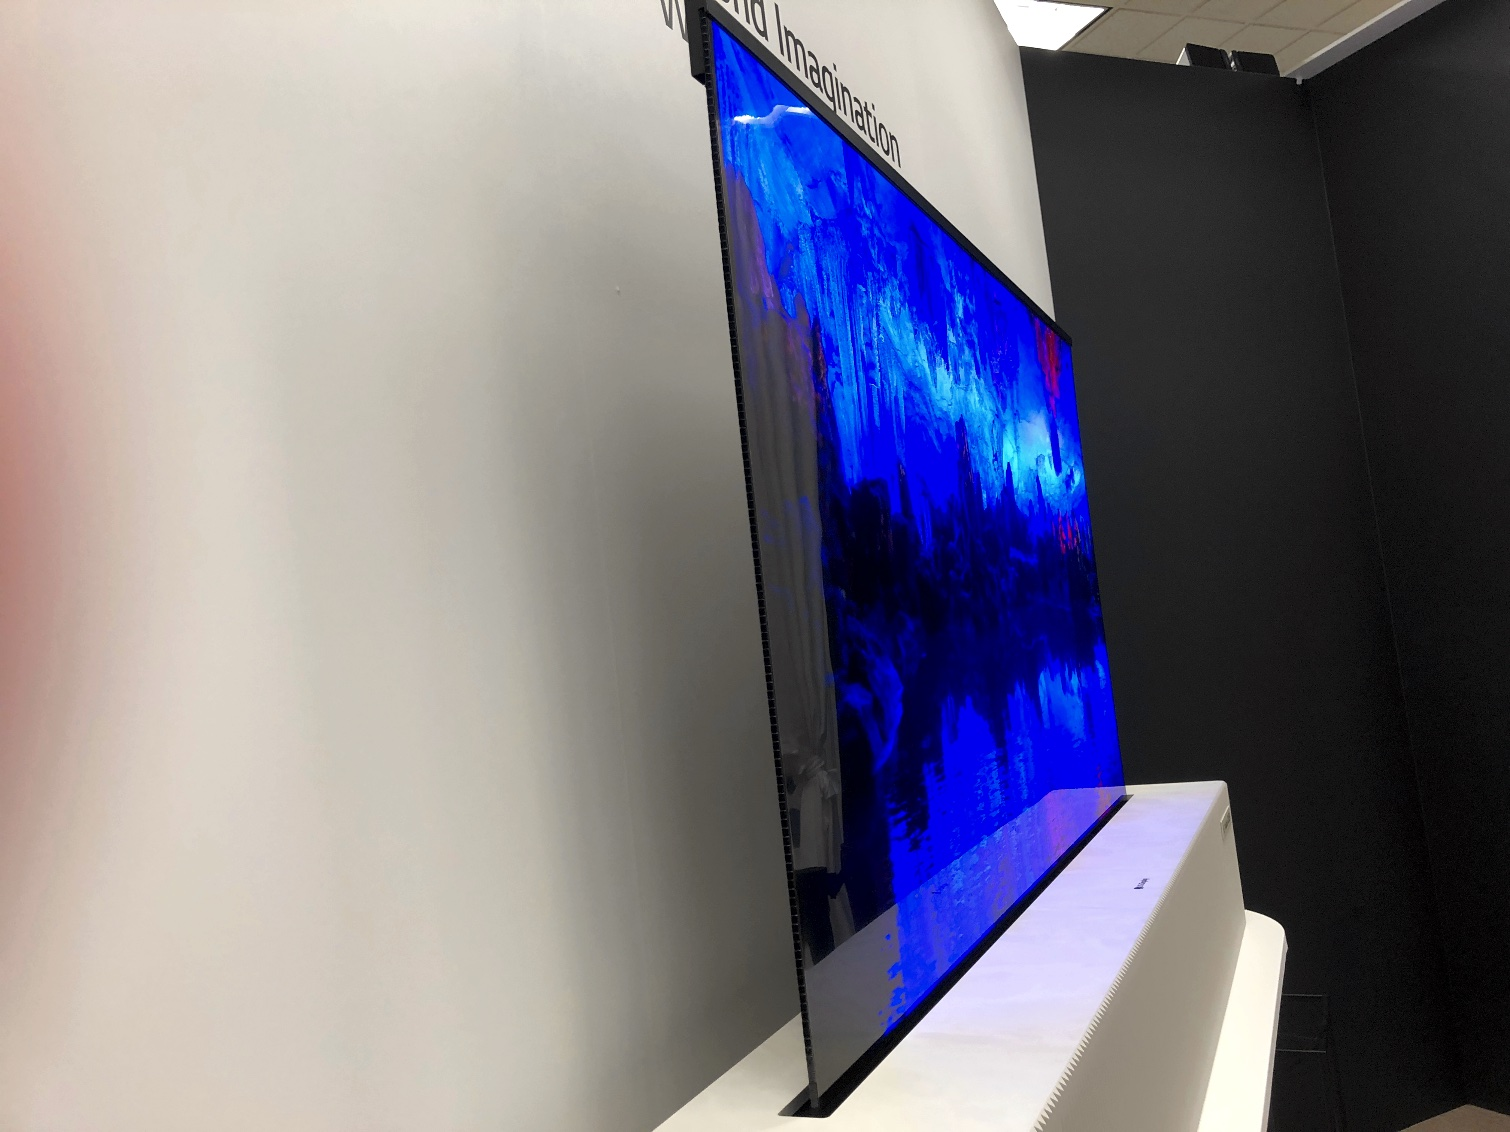 c791aa032551 LG's Amazing Rollable TV Is Becoming a Real Product This January | Tom's  Guide